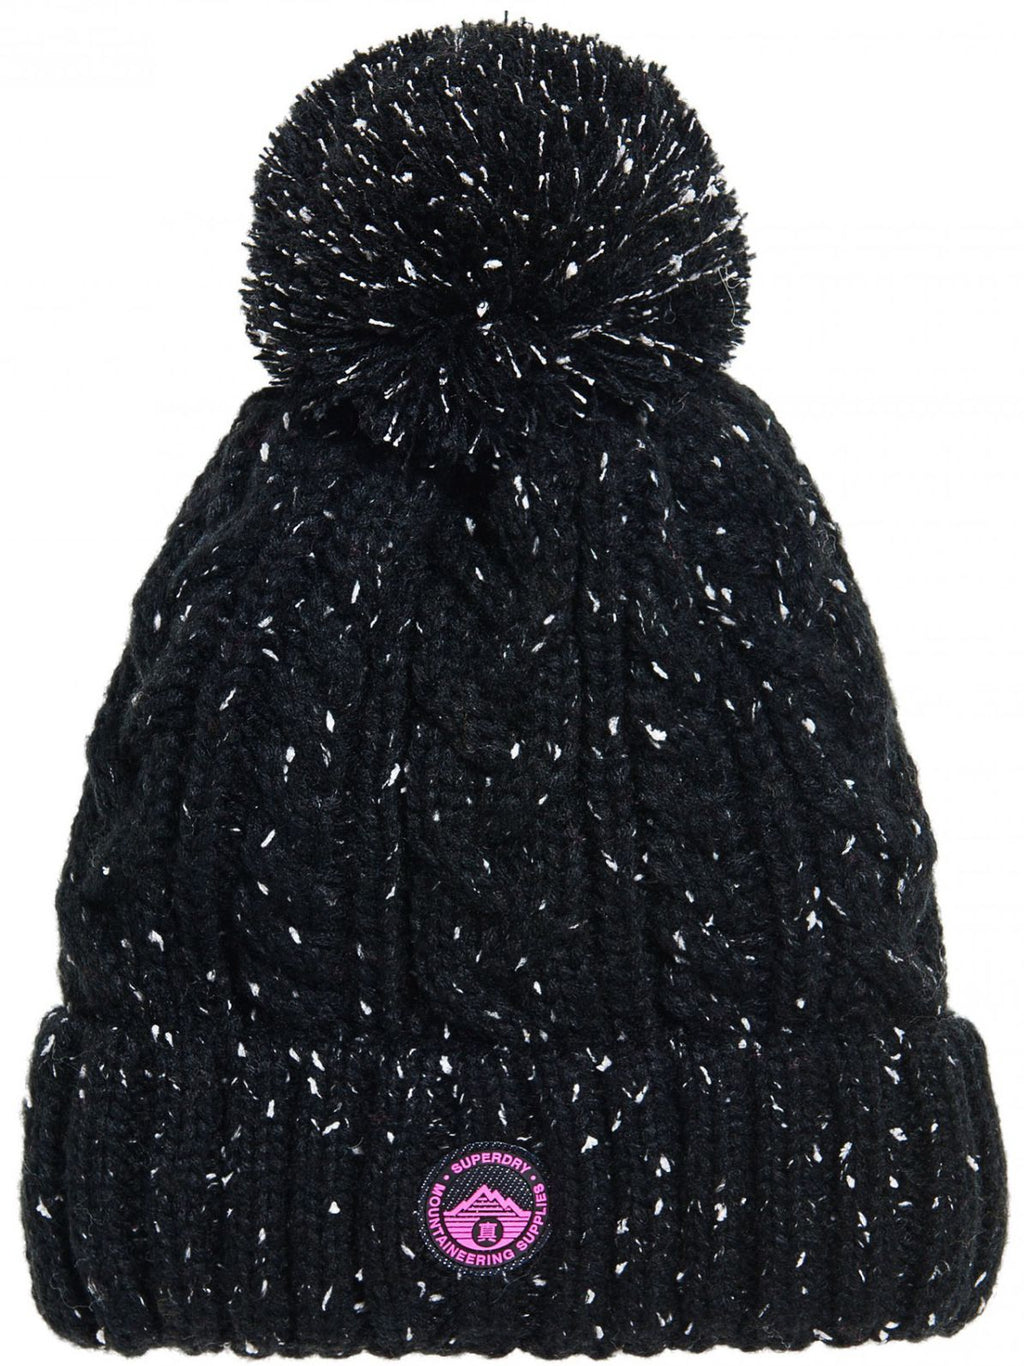 Superdry Gracie Cable Knit Bobble Beanie Hat Black